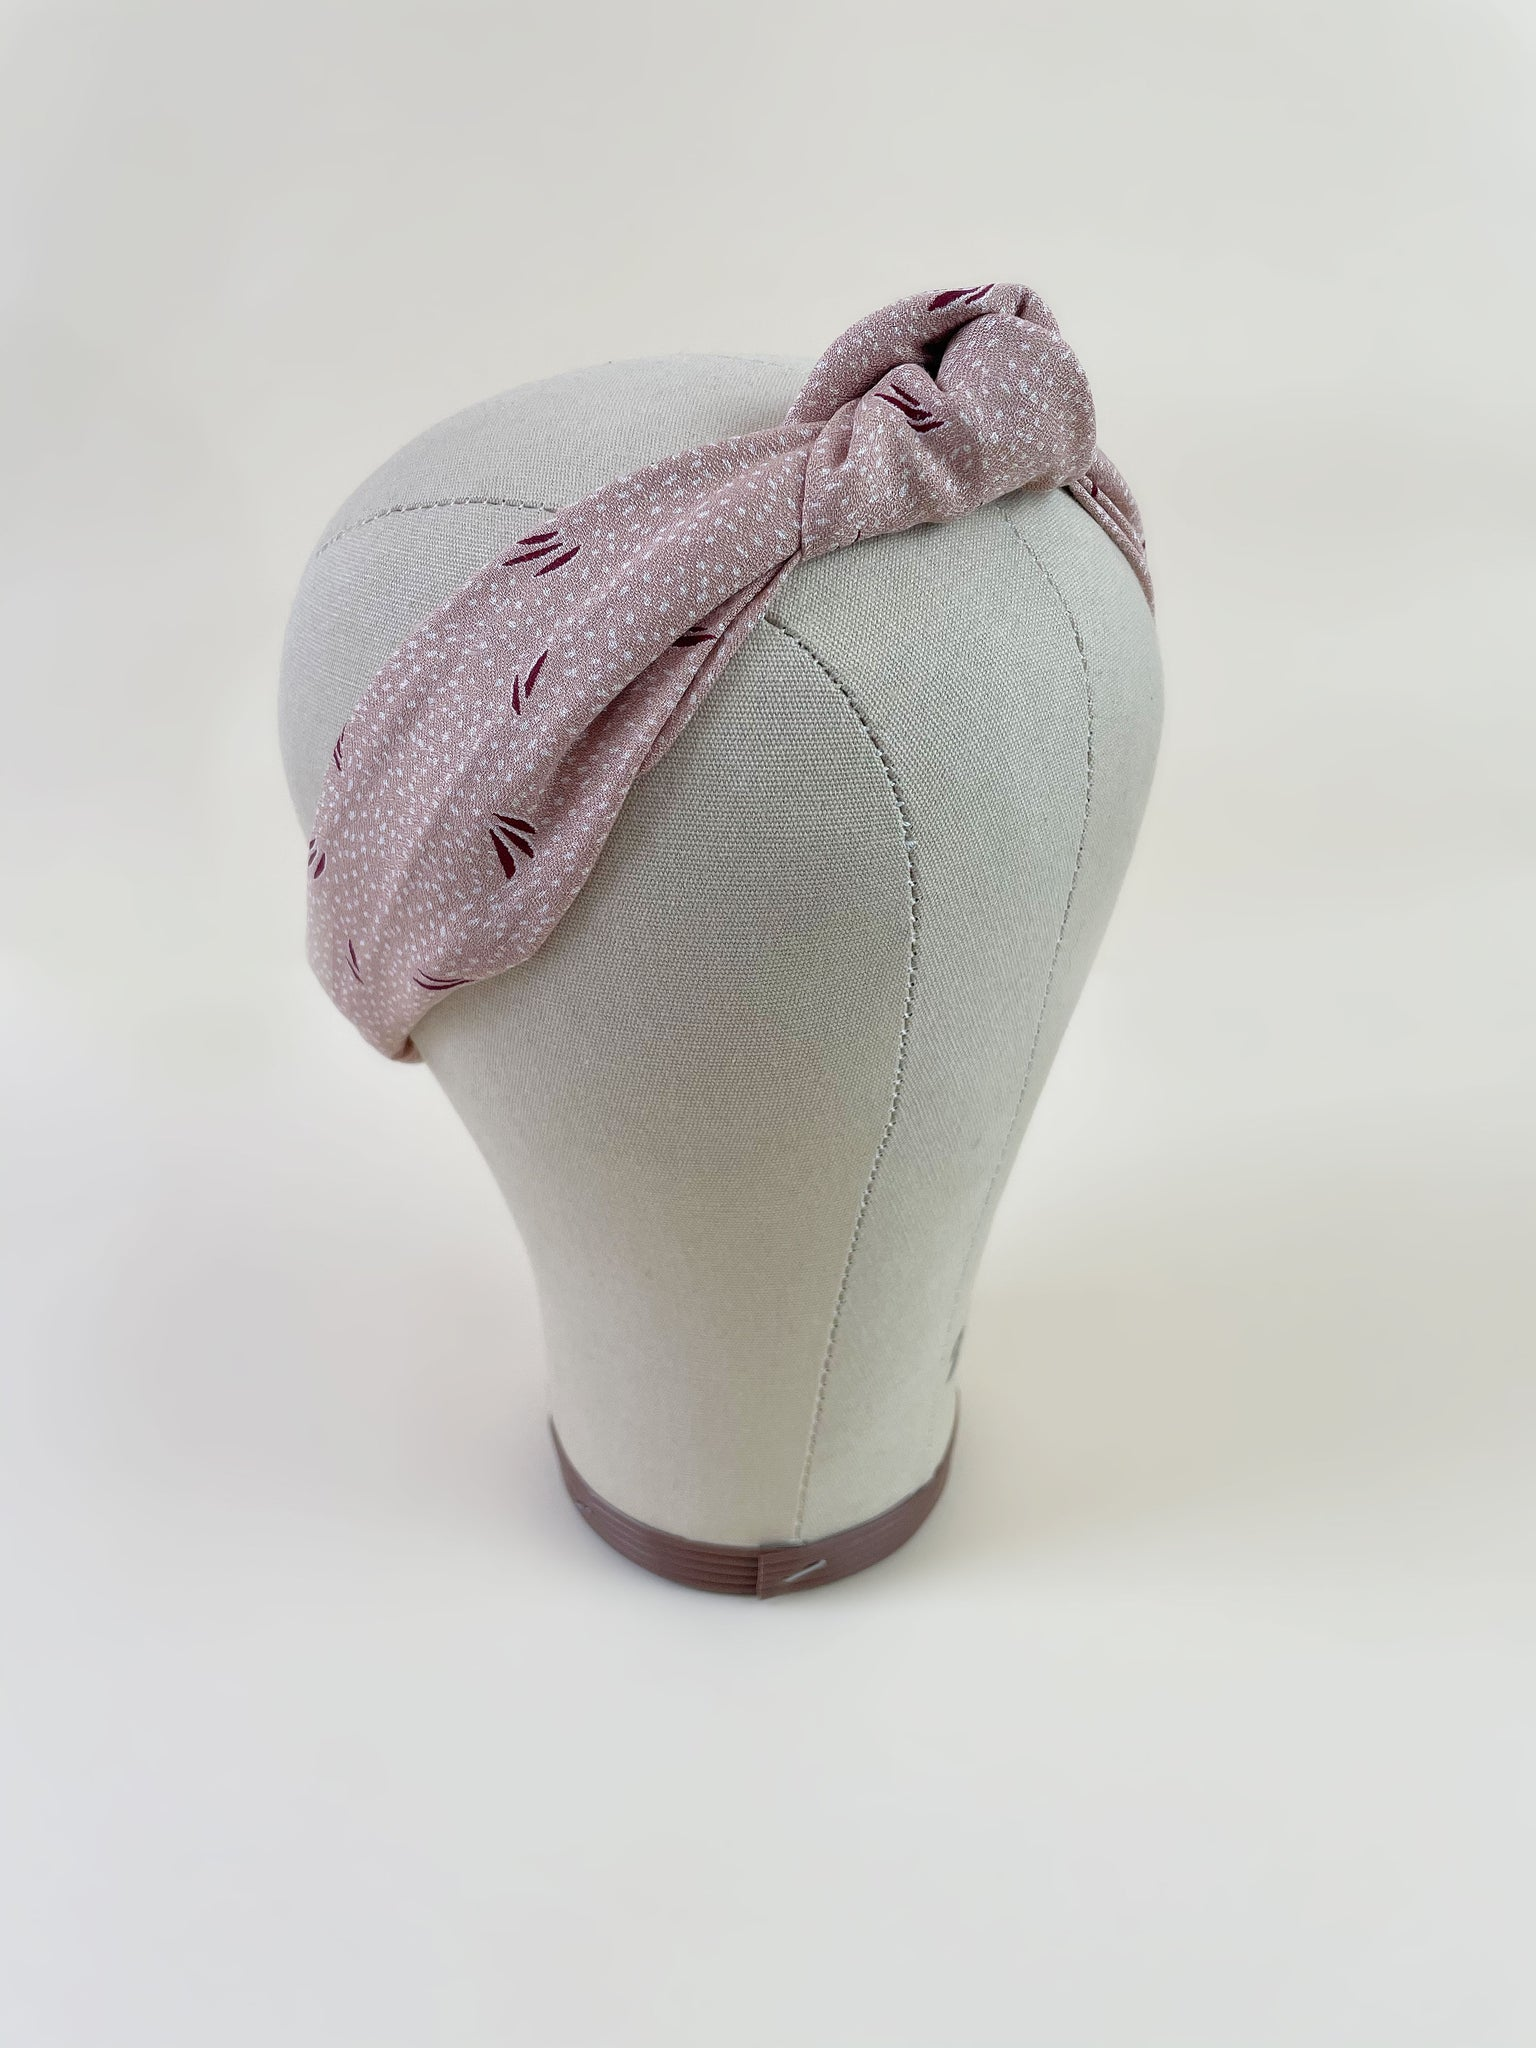 A light pink knotted headband with a dotted and grass print on a mannequin head.